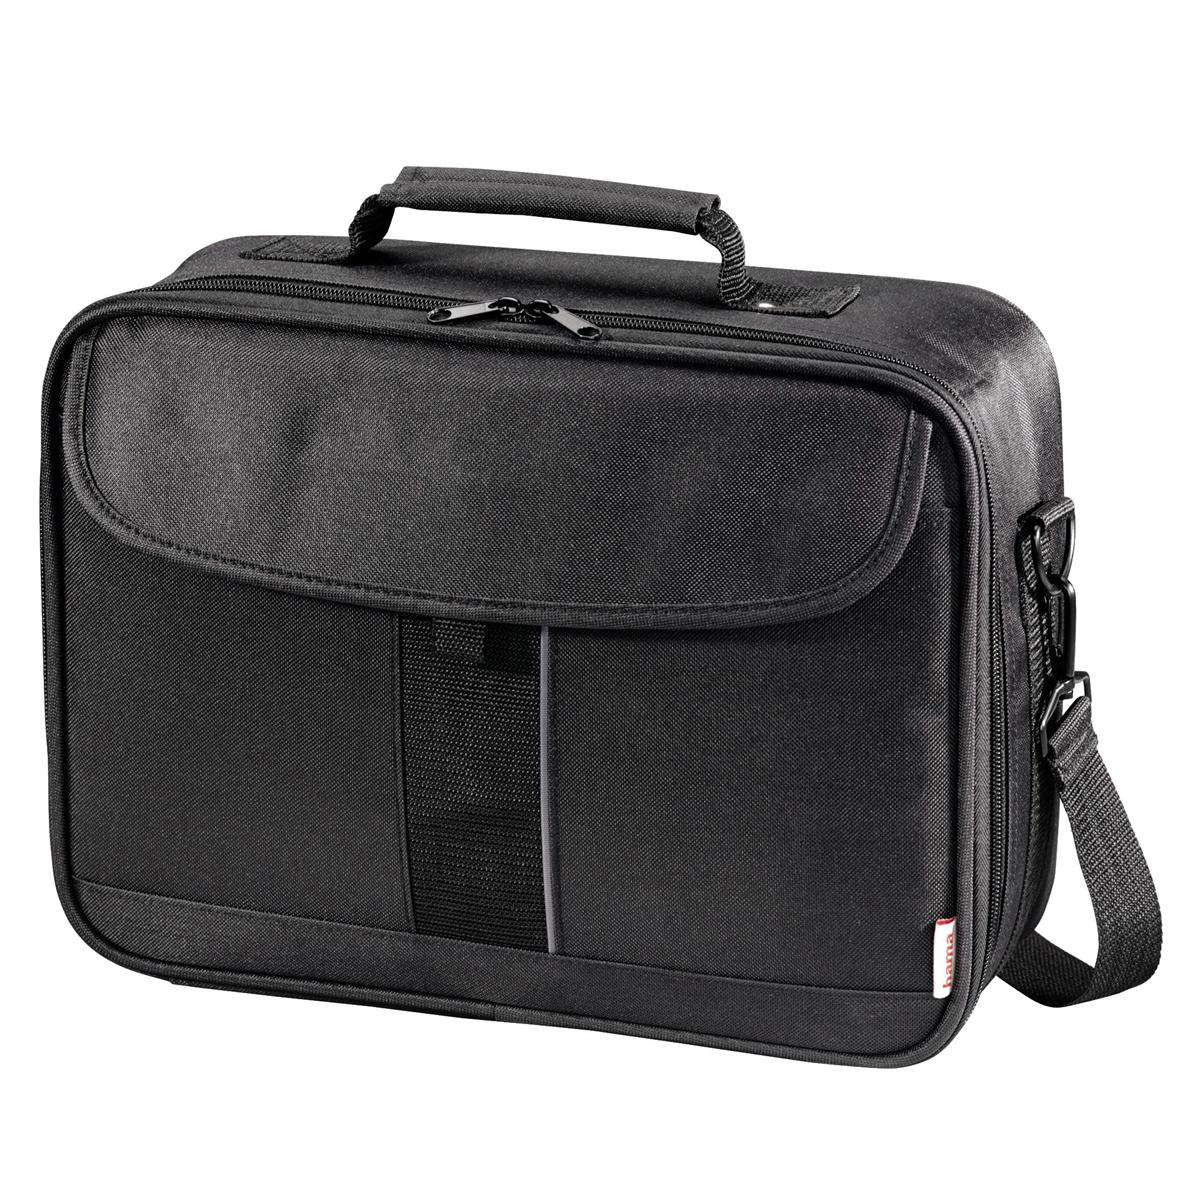 Image for Hama Sportsline Padded Projector Bag Large W390xD270xH150mm Black Ref 101066